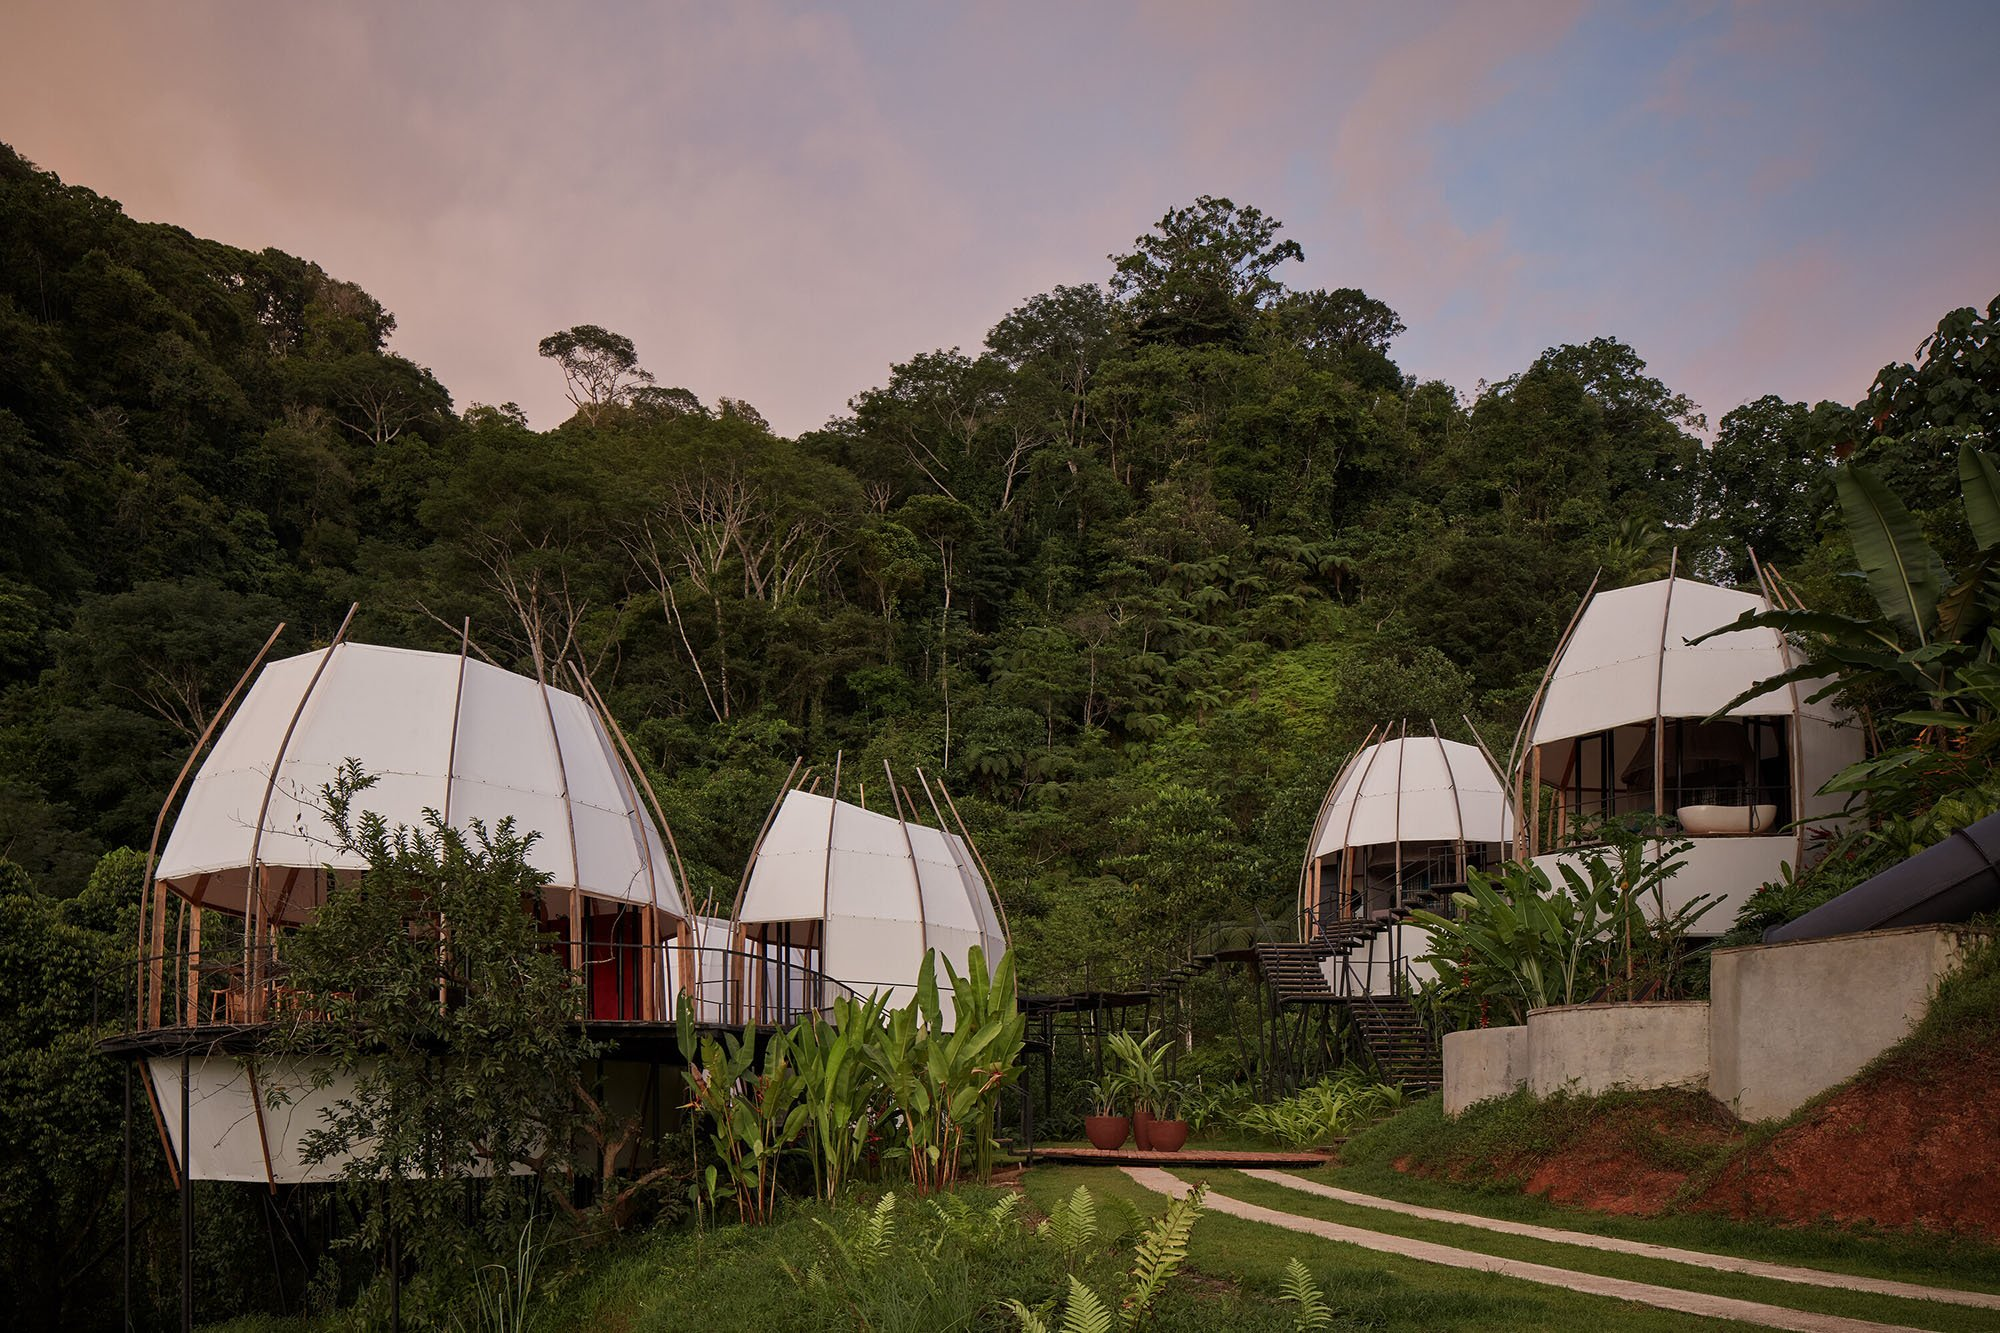 Coco: luxury, relaxation, and adventure in the Costa Rican jungle